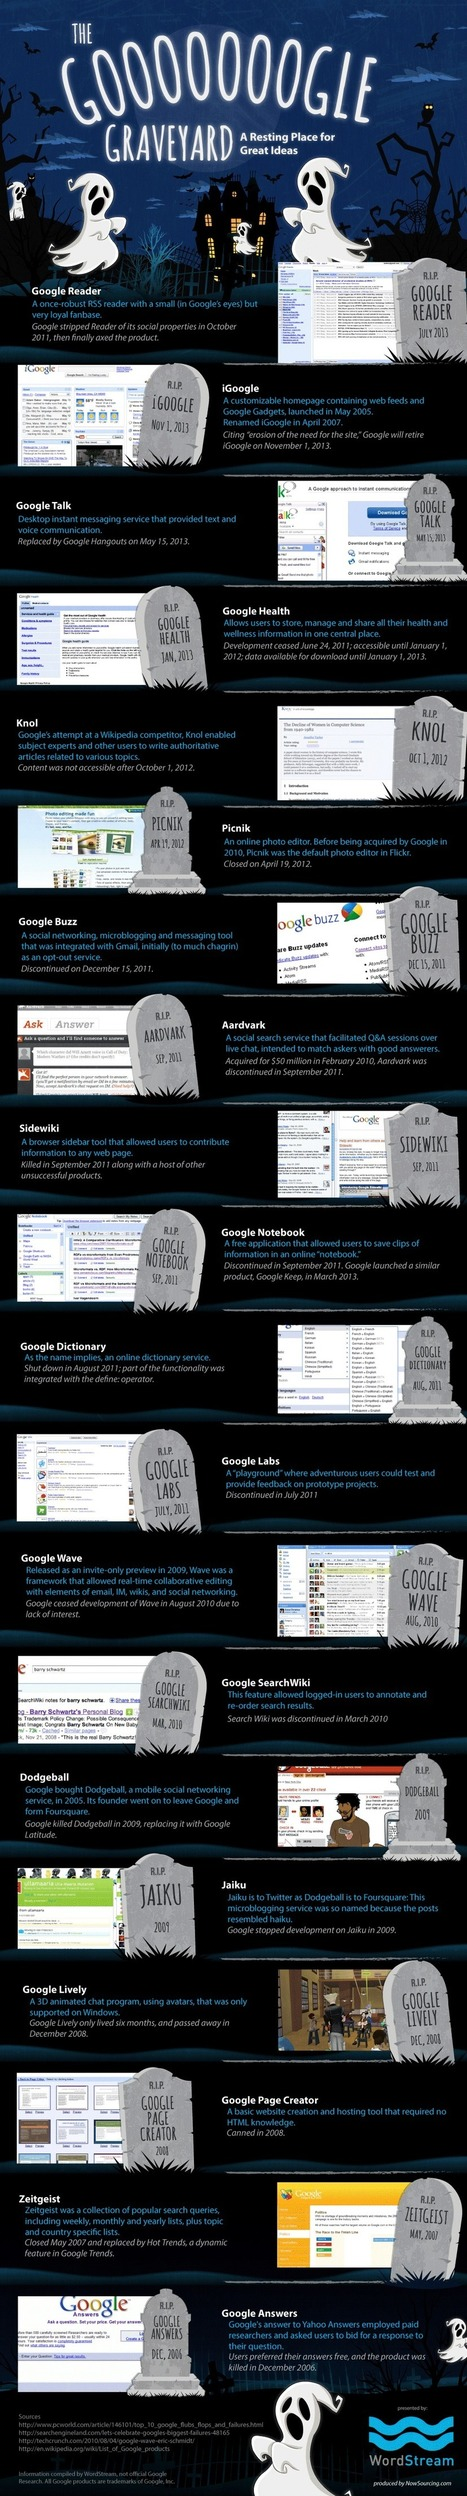 """Google Graveyard""   Google Readers Dies,  Joins Cousins: Infographic 